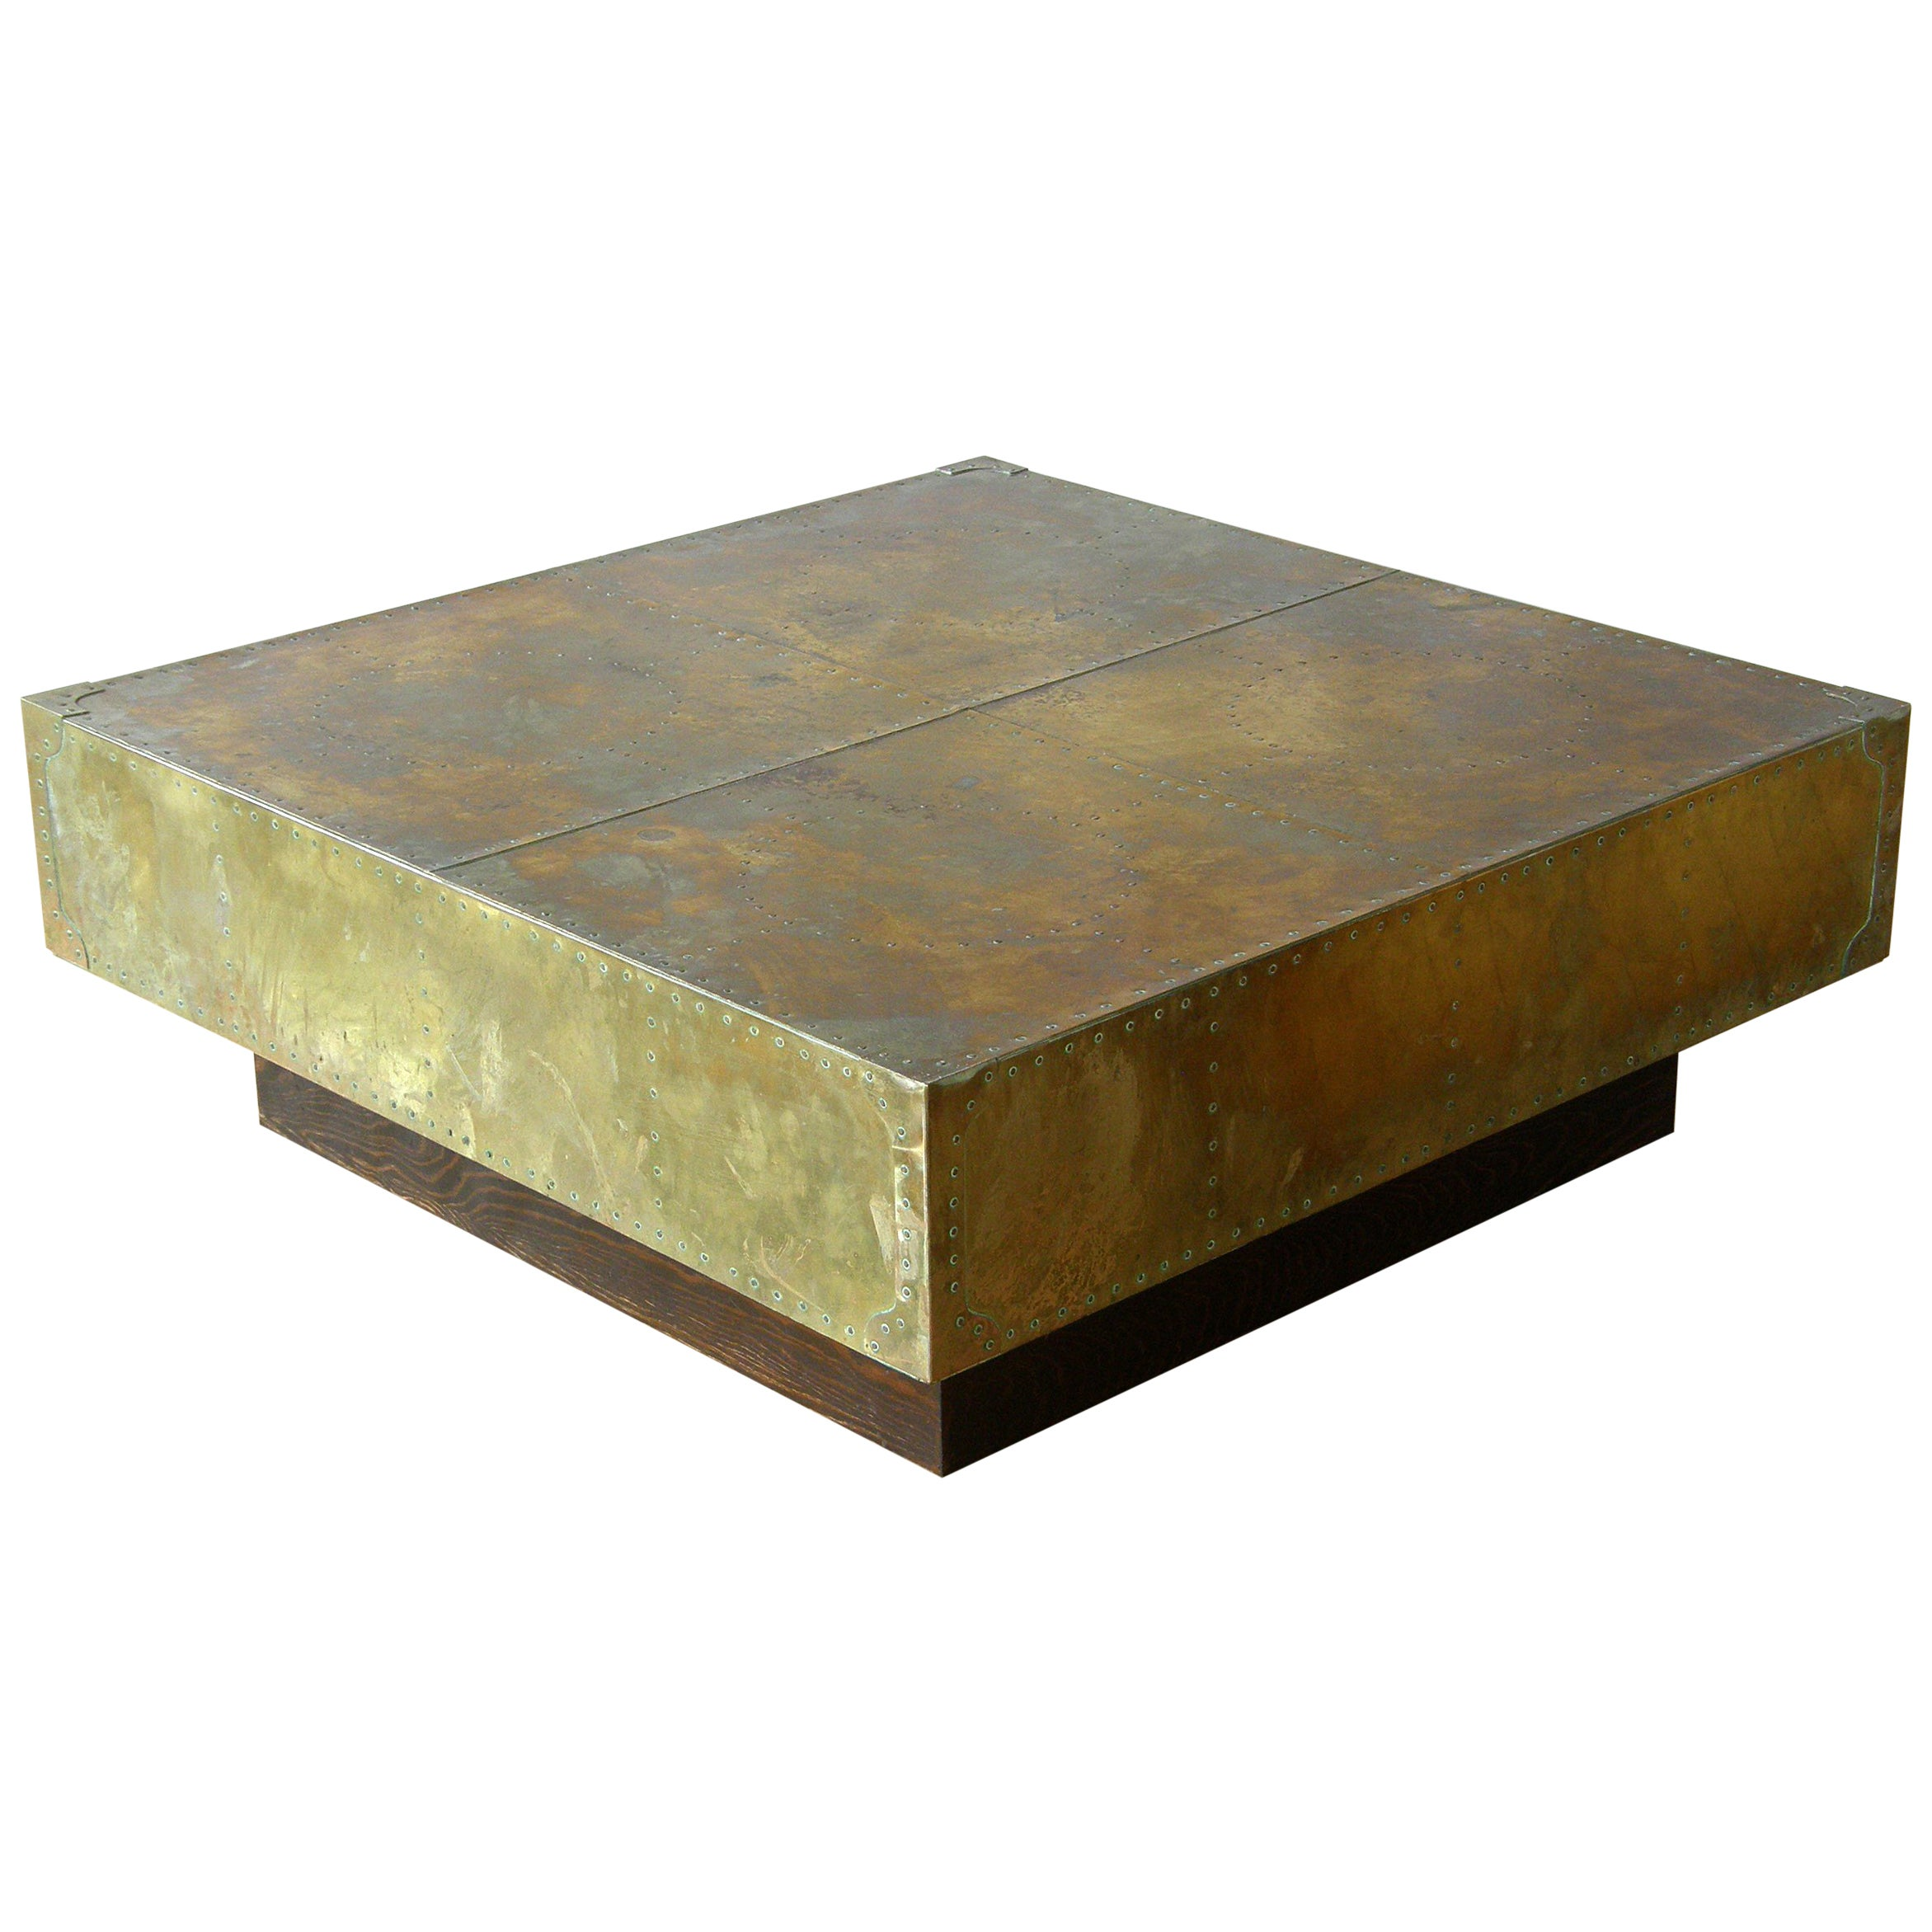 Square Brass Clad and Riveted Coffee Table on Plinth Base Attributed to Sarreid